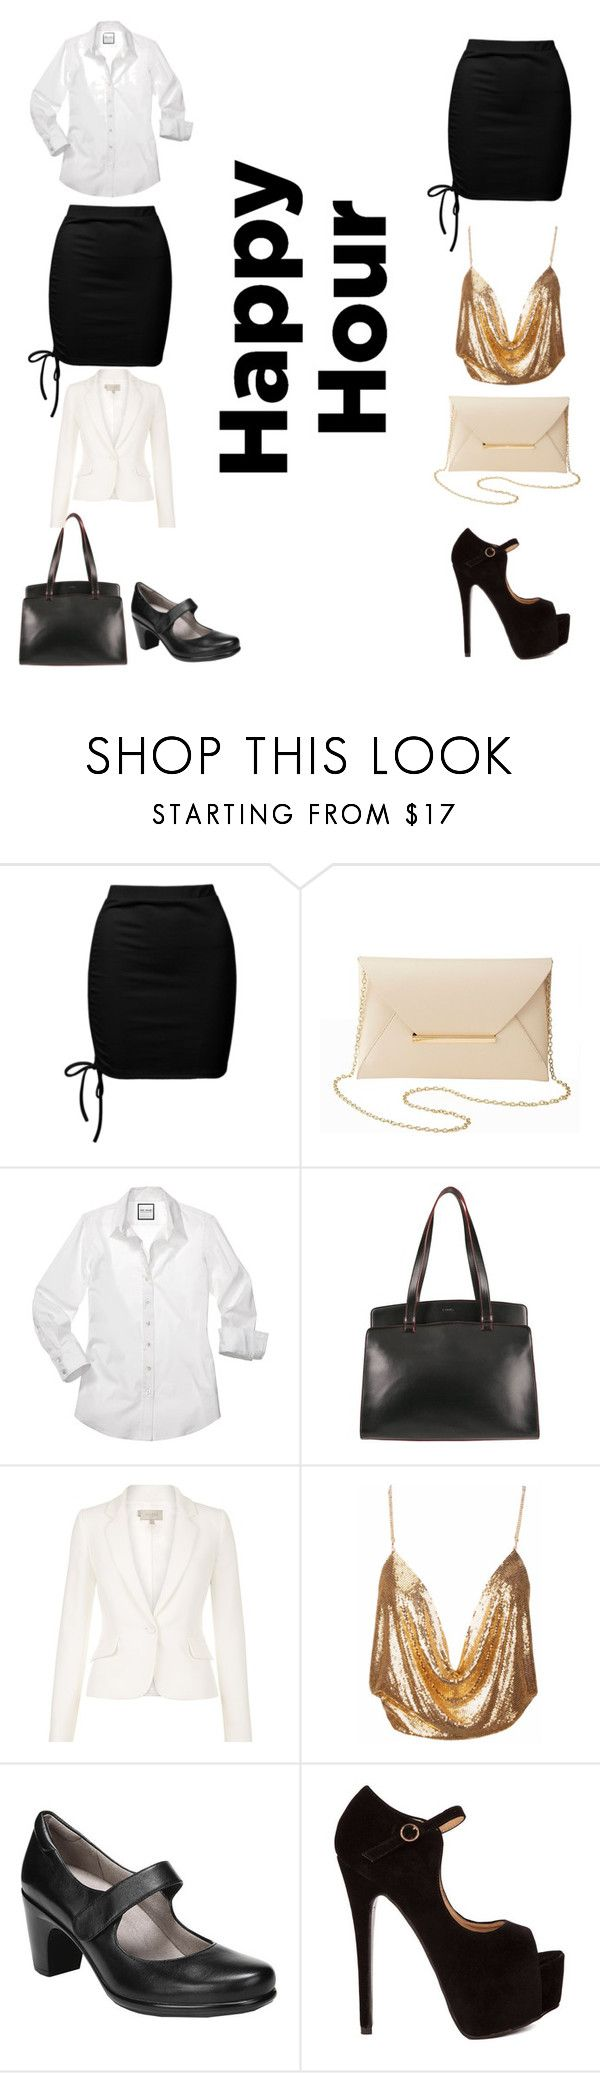 """""""Happy hour"""" by d5sand ❤ liked on Polyvore featuring Sans Souci, Charlotte Russe, Lodis, Hobbs and Naturalizer"""